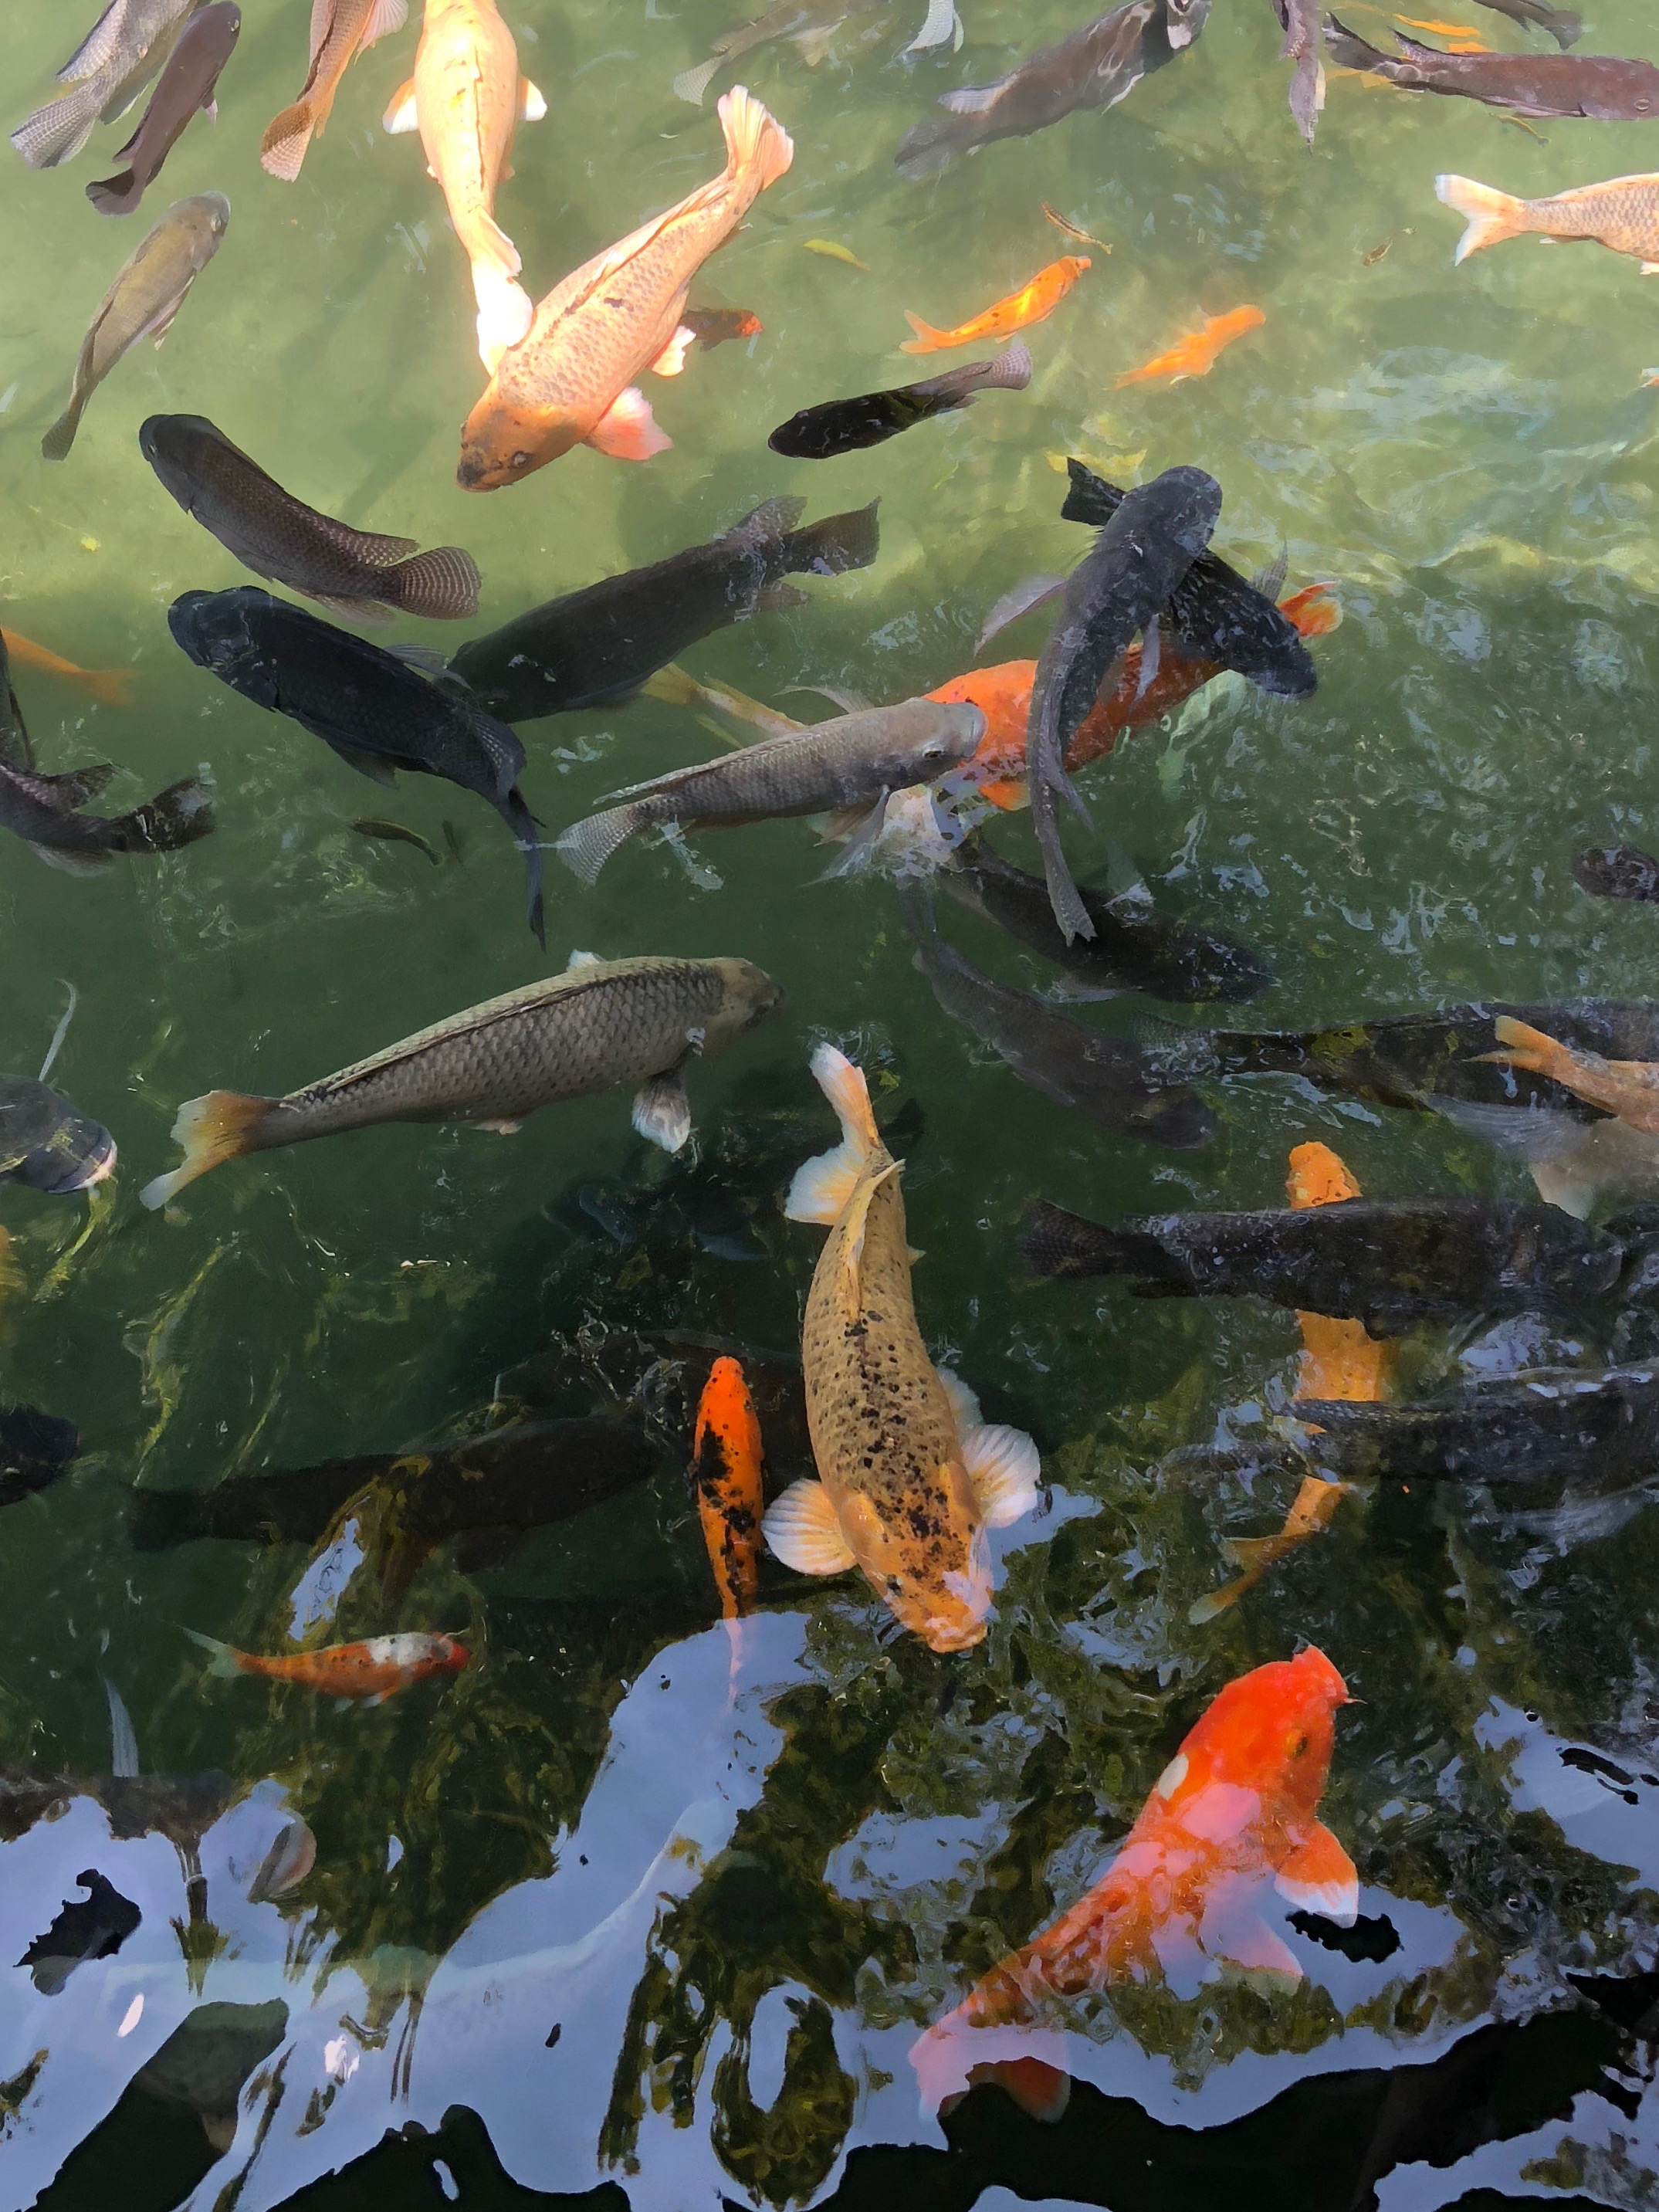 Holy carp! The pool is filled with koi and isn't a place for bathing